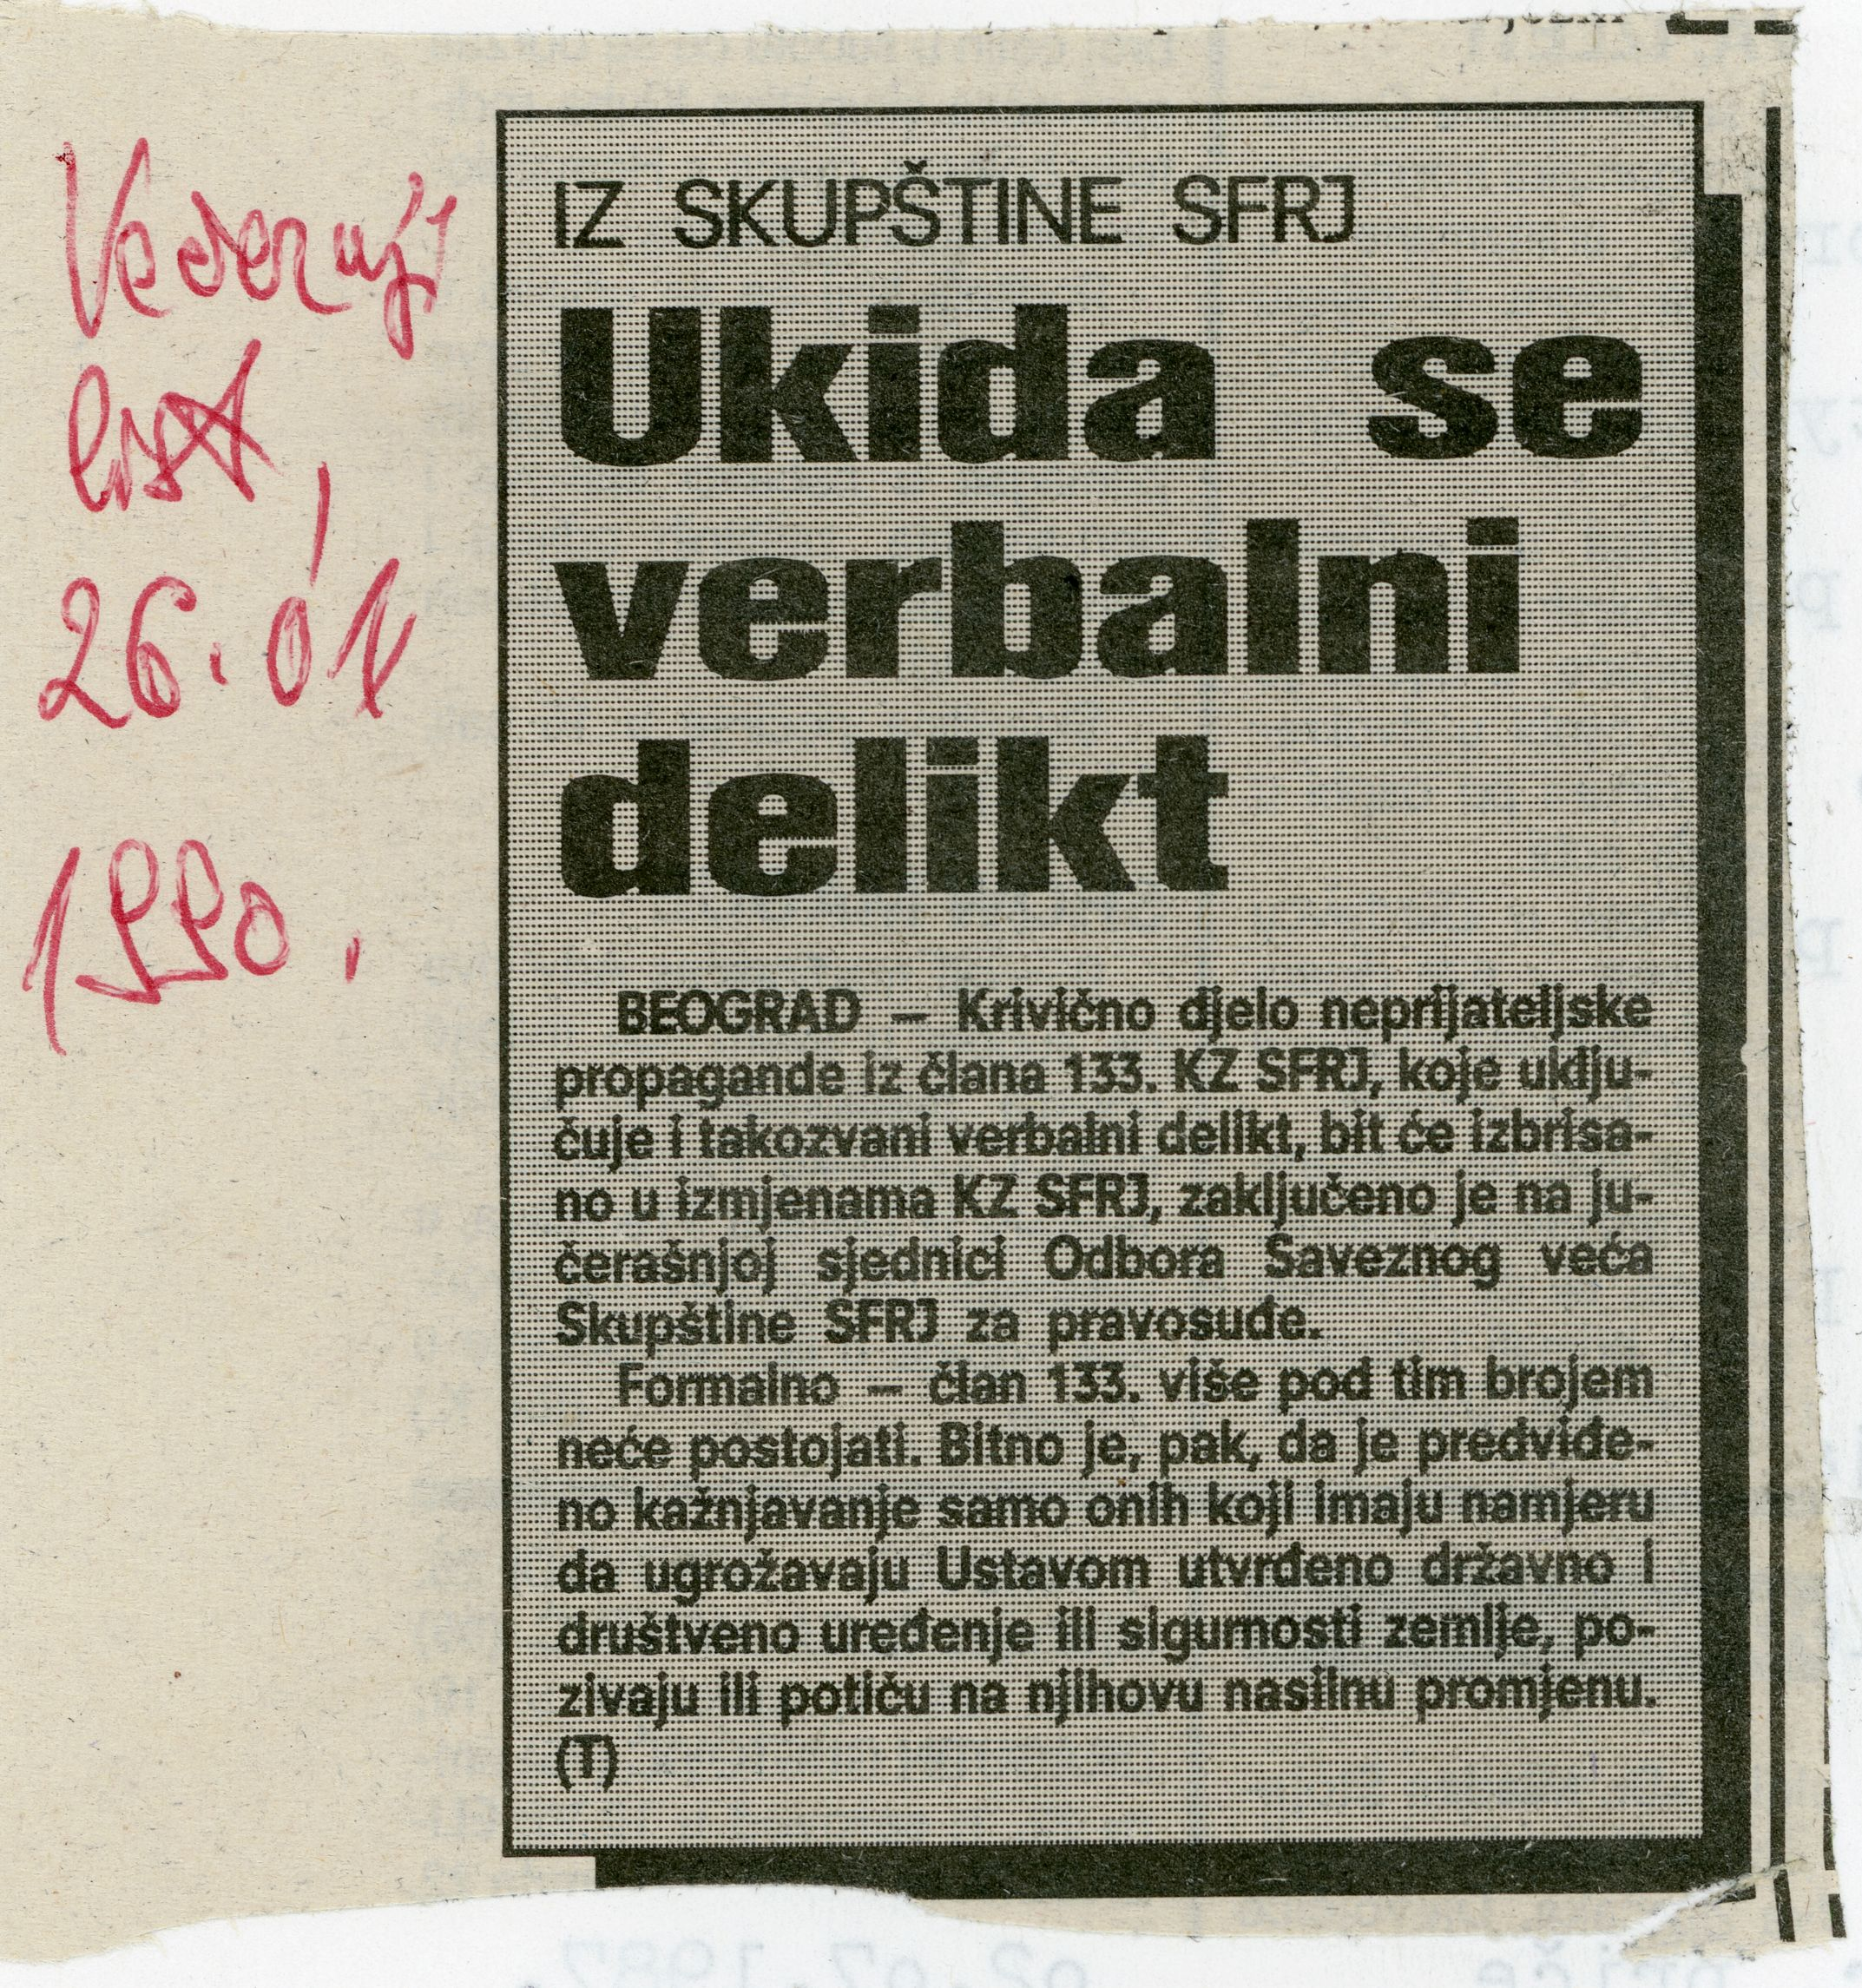 Press clipping 'The Verbal delict is being abolished', Večernji list, 26. April 1990